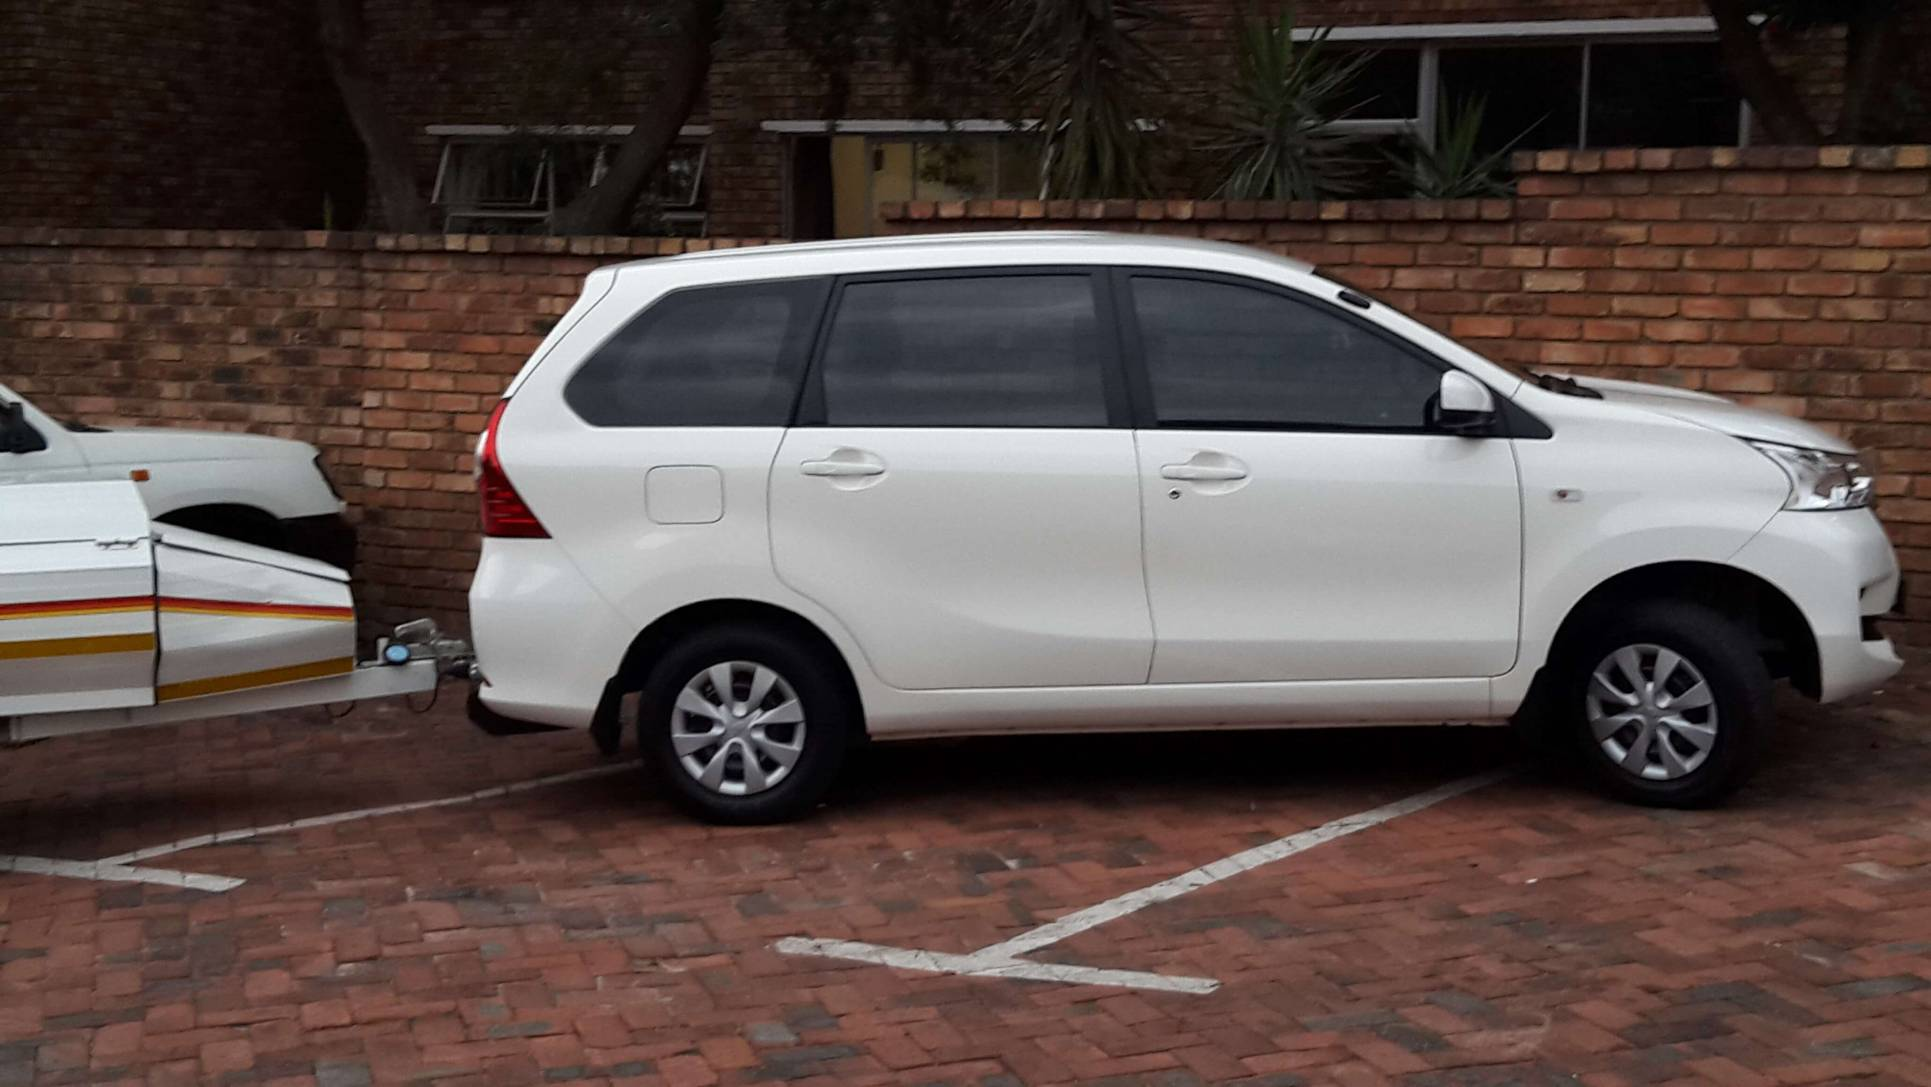 SUV Hire 7 Seater Taxi